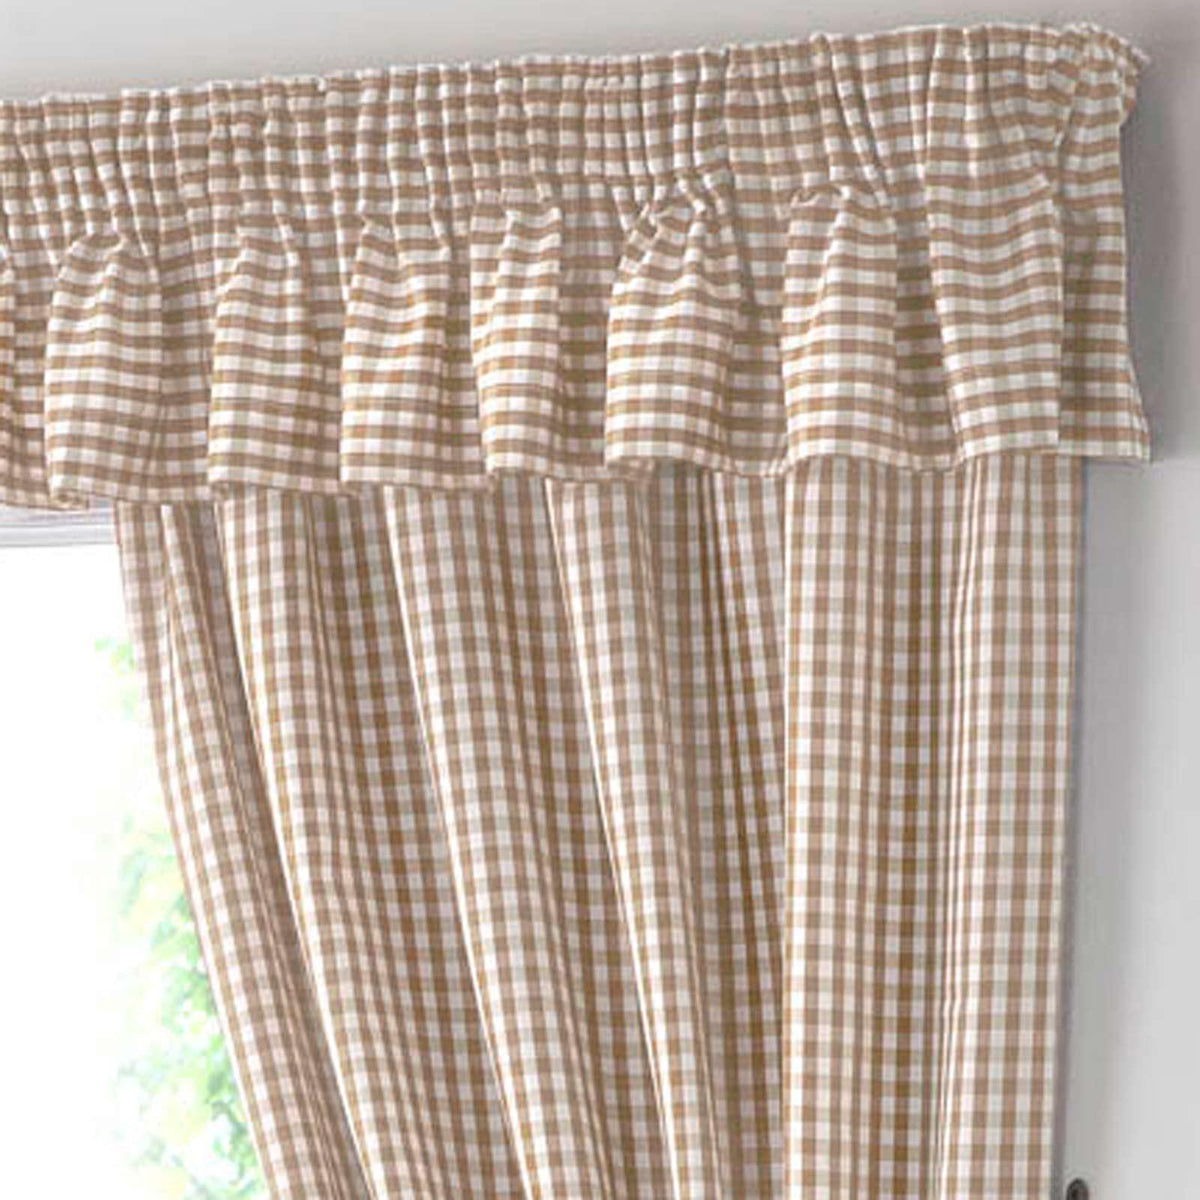 gingham check beige kitchen curtains - ideal textiles